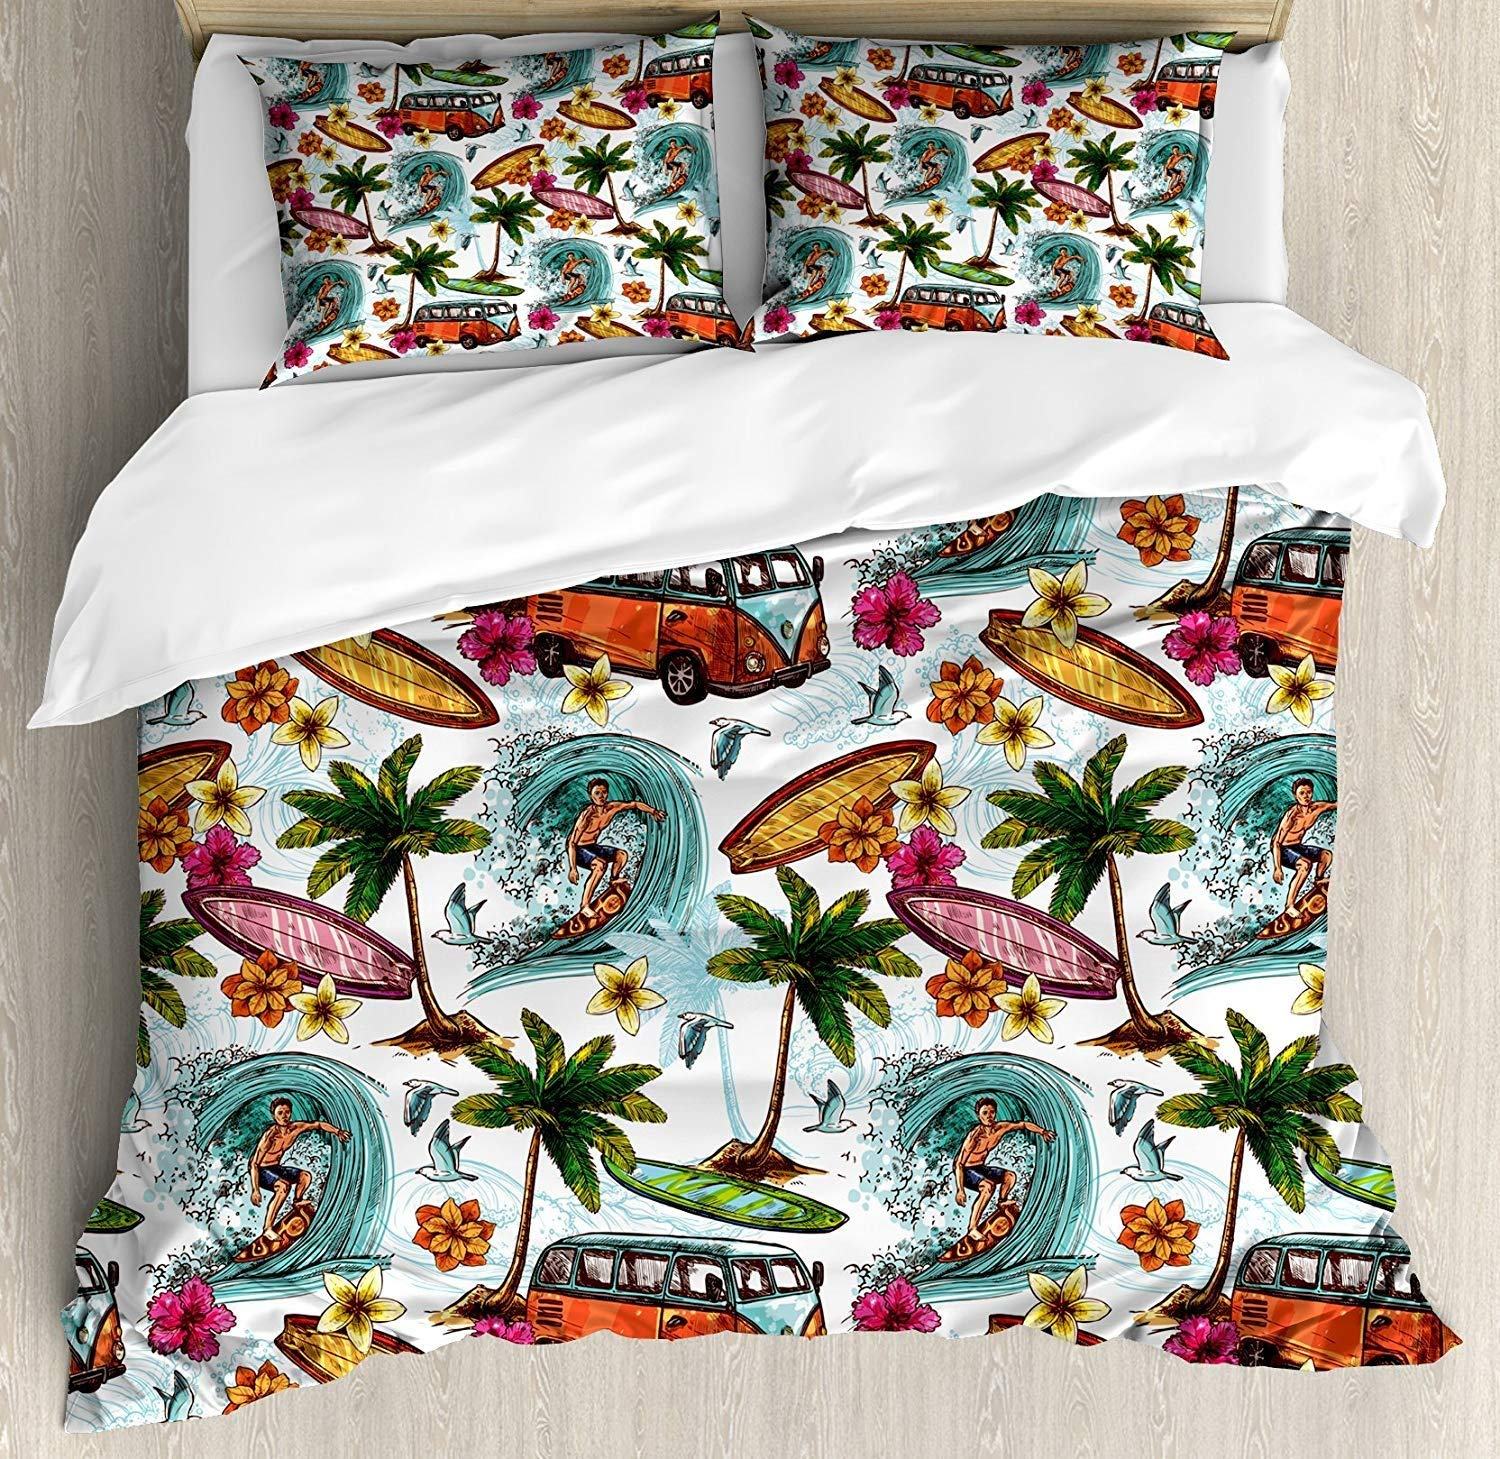 Ocean Bedding Set Hawaiian Surfer on Wavy Deep Sea Retro Style Palm Trees Flowers Surf Boards Print 3/4pcs Duvet Cover SetOcean Bedding Set Hawaiian Surfer on Wavy Deep Sea Retro Style Palm Trees Flowers Surf Boards Print 3/4pcs Duvet Cover Set